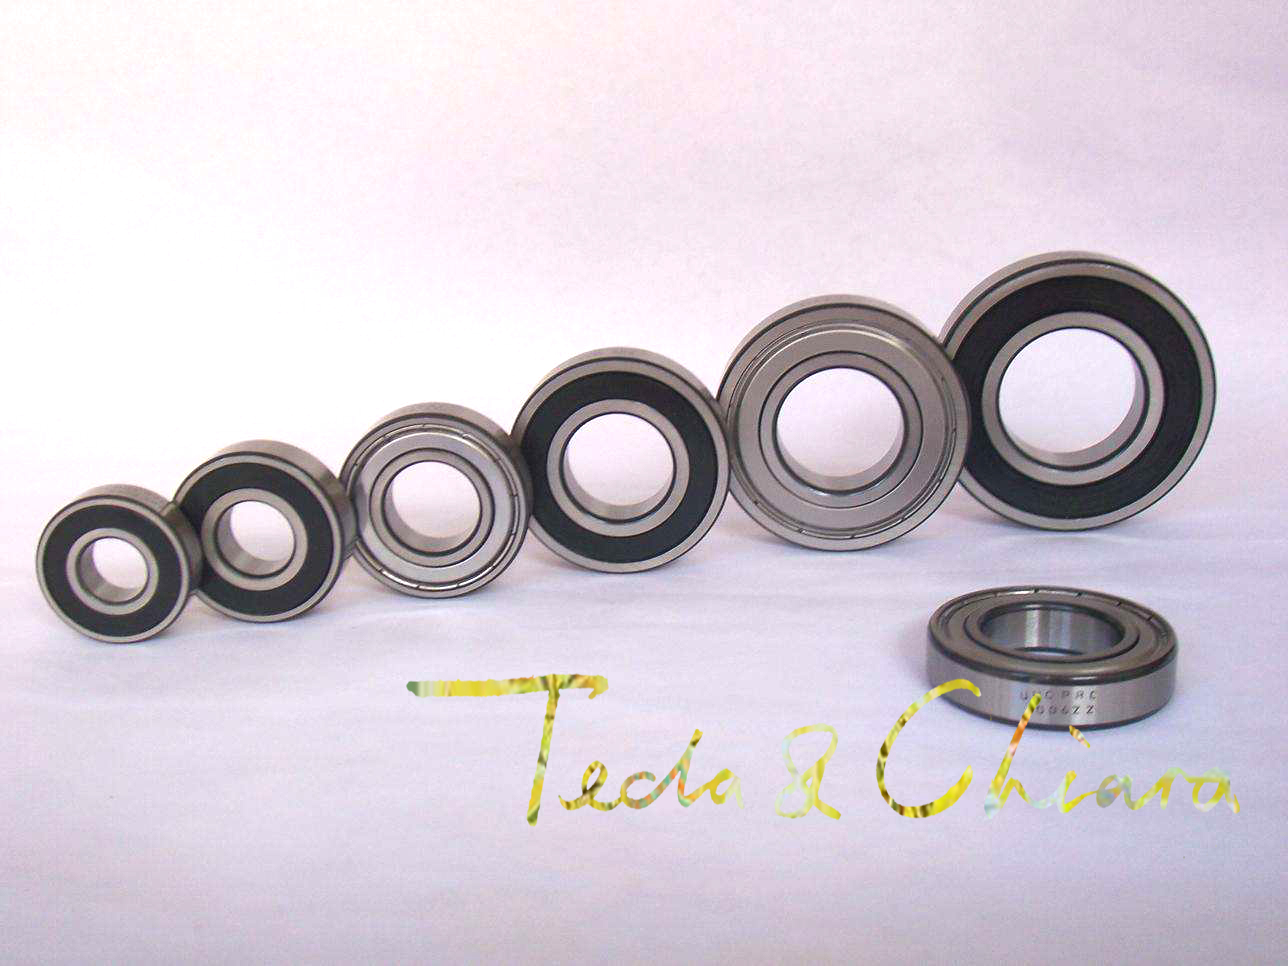 6802 6802ZZ 6802RS 6802-2Z 6802Z 6802-2RS ZZ RS RZ 2RZ Deep Groove Ball Bearings 15 x 24 x 5mm High Quality 6700 6700zz 6700rs 6700 2z 6700z 6700 2rs zz rs rz 2rz deep groove ball bearings 10 x 15 x 4mm high quality